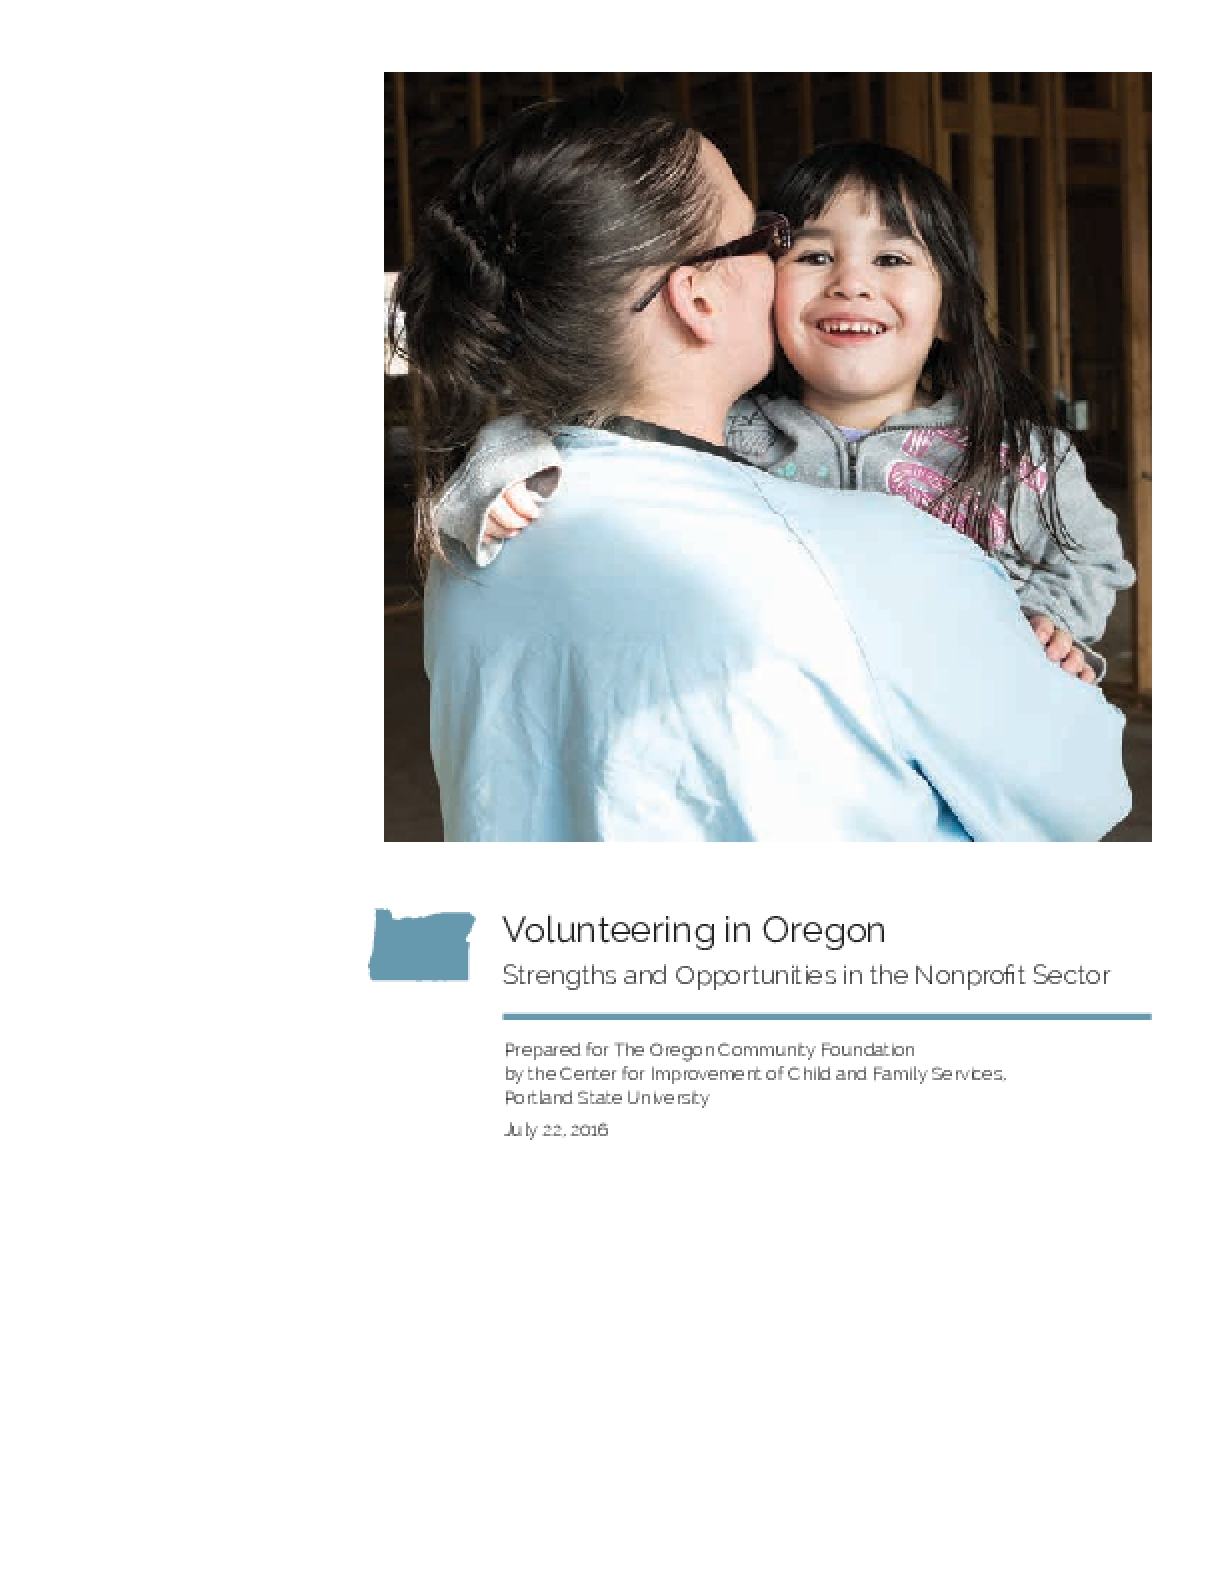 Volunteering in Oregon Strengths and Opportunities in the Nonprofit Sector